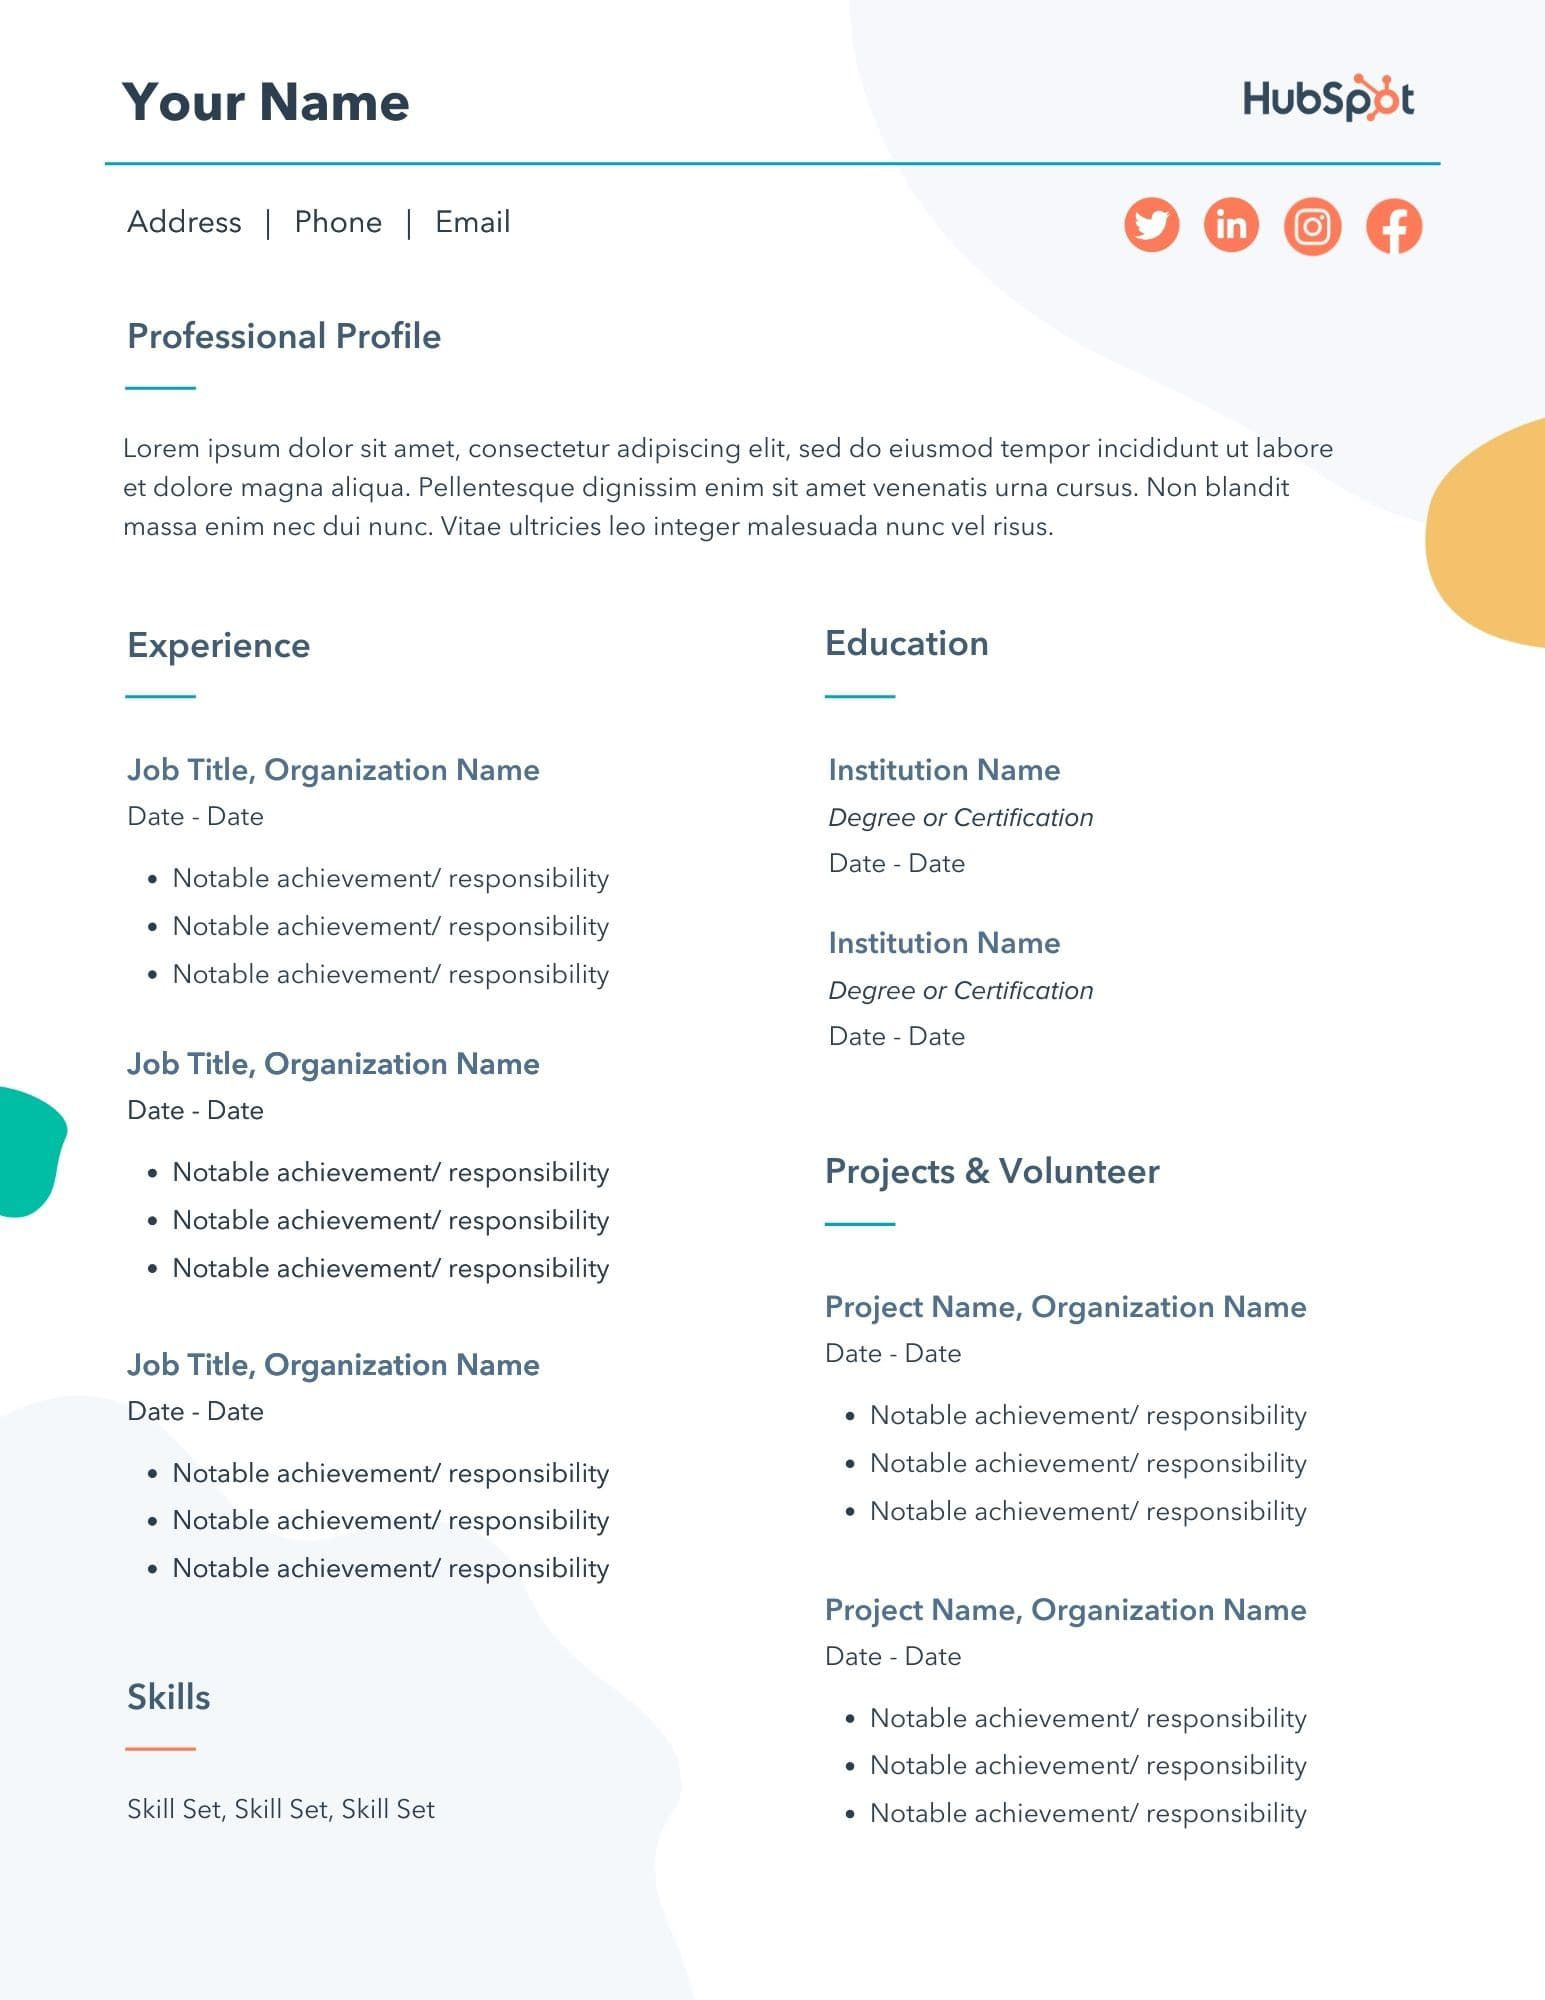 004 Top Resume Template For First Job Image  Student Australia After Time JobseekerFull